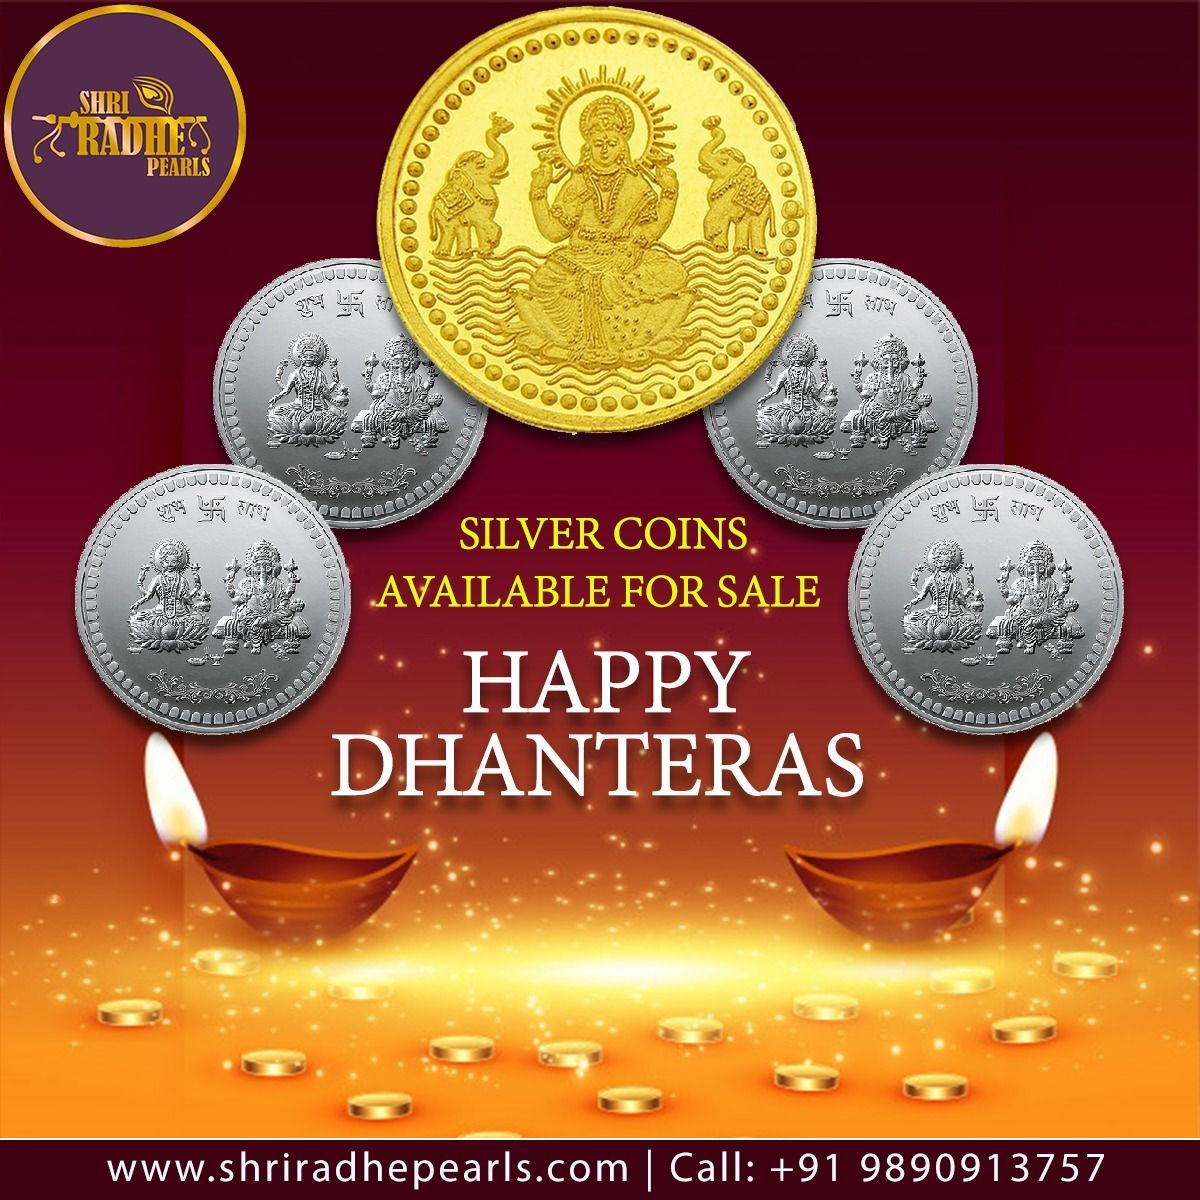 This Dhanteras, make sure you invest in jewelry to have a sound and stable future.  We at Shri Radhe Pearls wish you all a very Happy Dhanteras  #ShriRadhePearlsJeweleryStore #ImitationJewelry #TrendyJewelry #PearlJewelry #GramJewelry #JewelryShopping #HappyDhanteras #silvercoins #happydhanteras This Dhanteras, make sure you invest in jewelry to have a sound and stable future.  We at Shri Radhe Pearls wish you all a very Happy Dhanteras  #ShriRadhePearlsJeweleryStore #ImitationJewelry #TrendyJew #happydhanteras